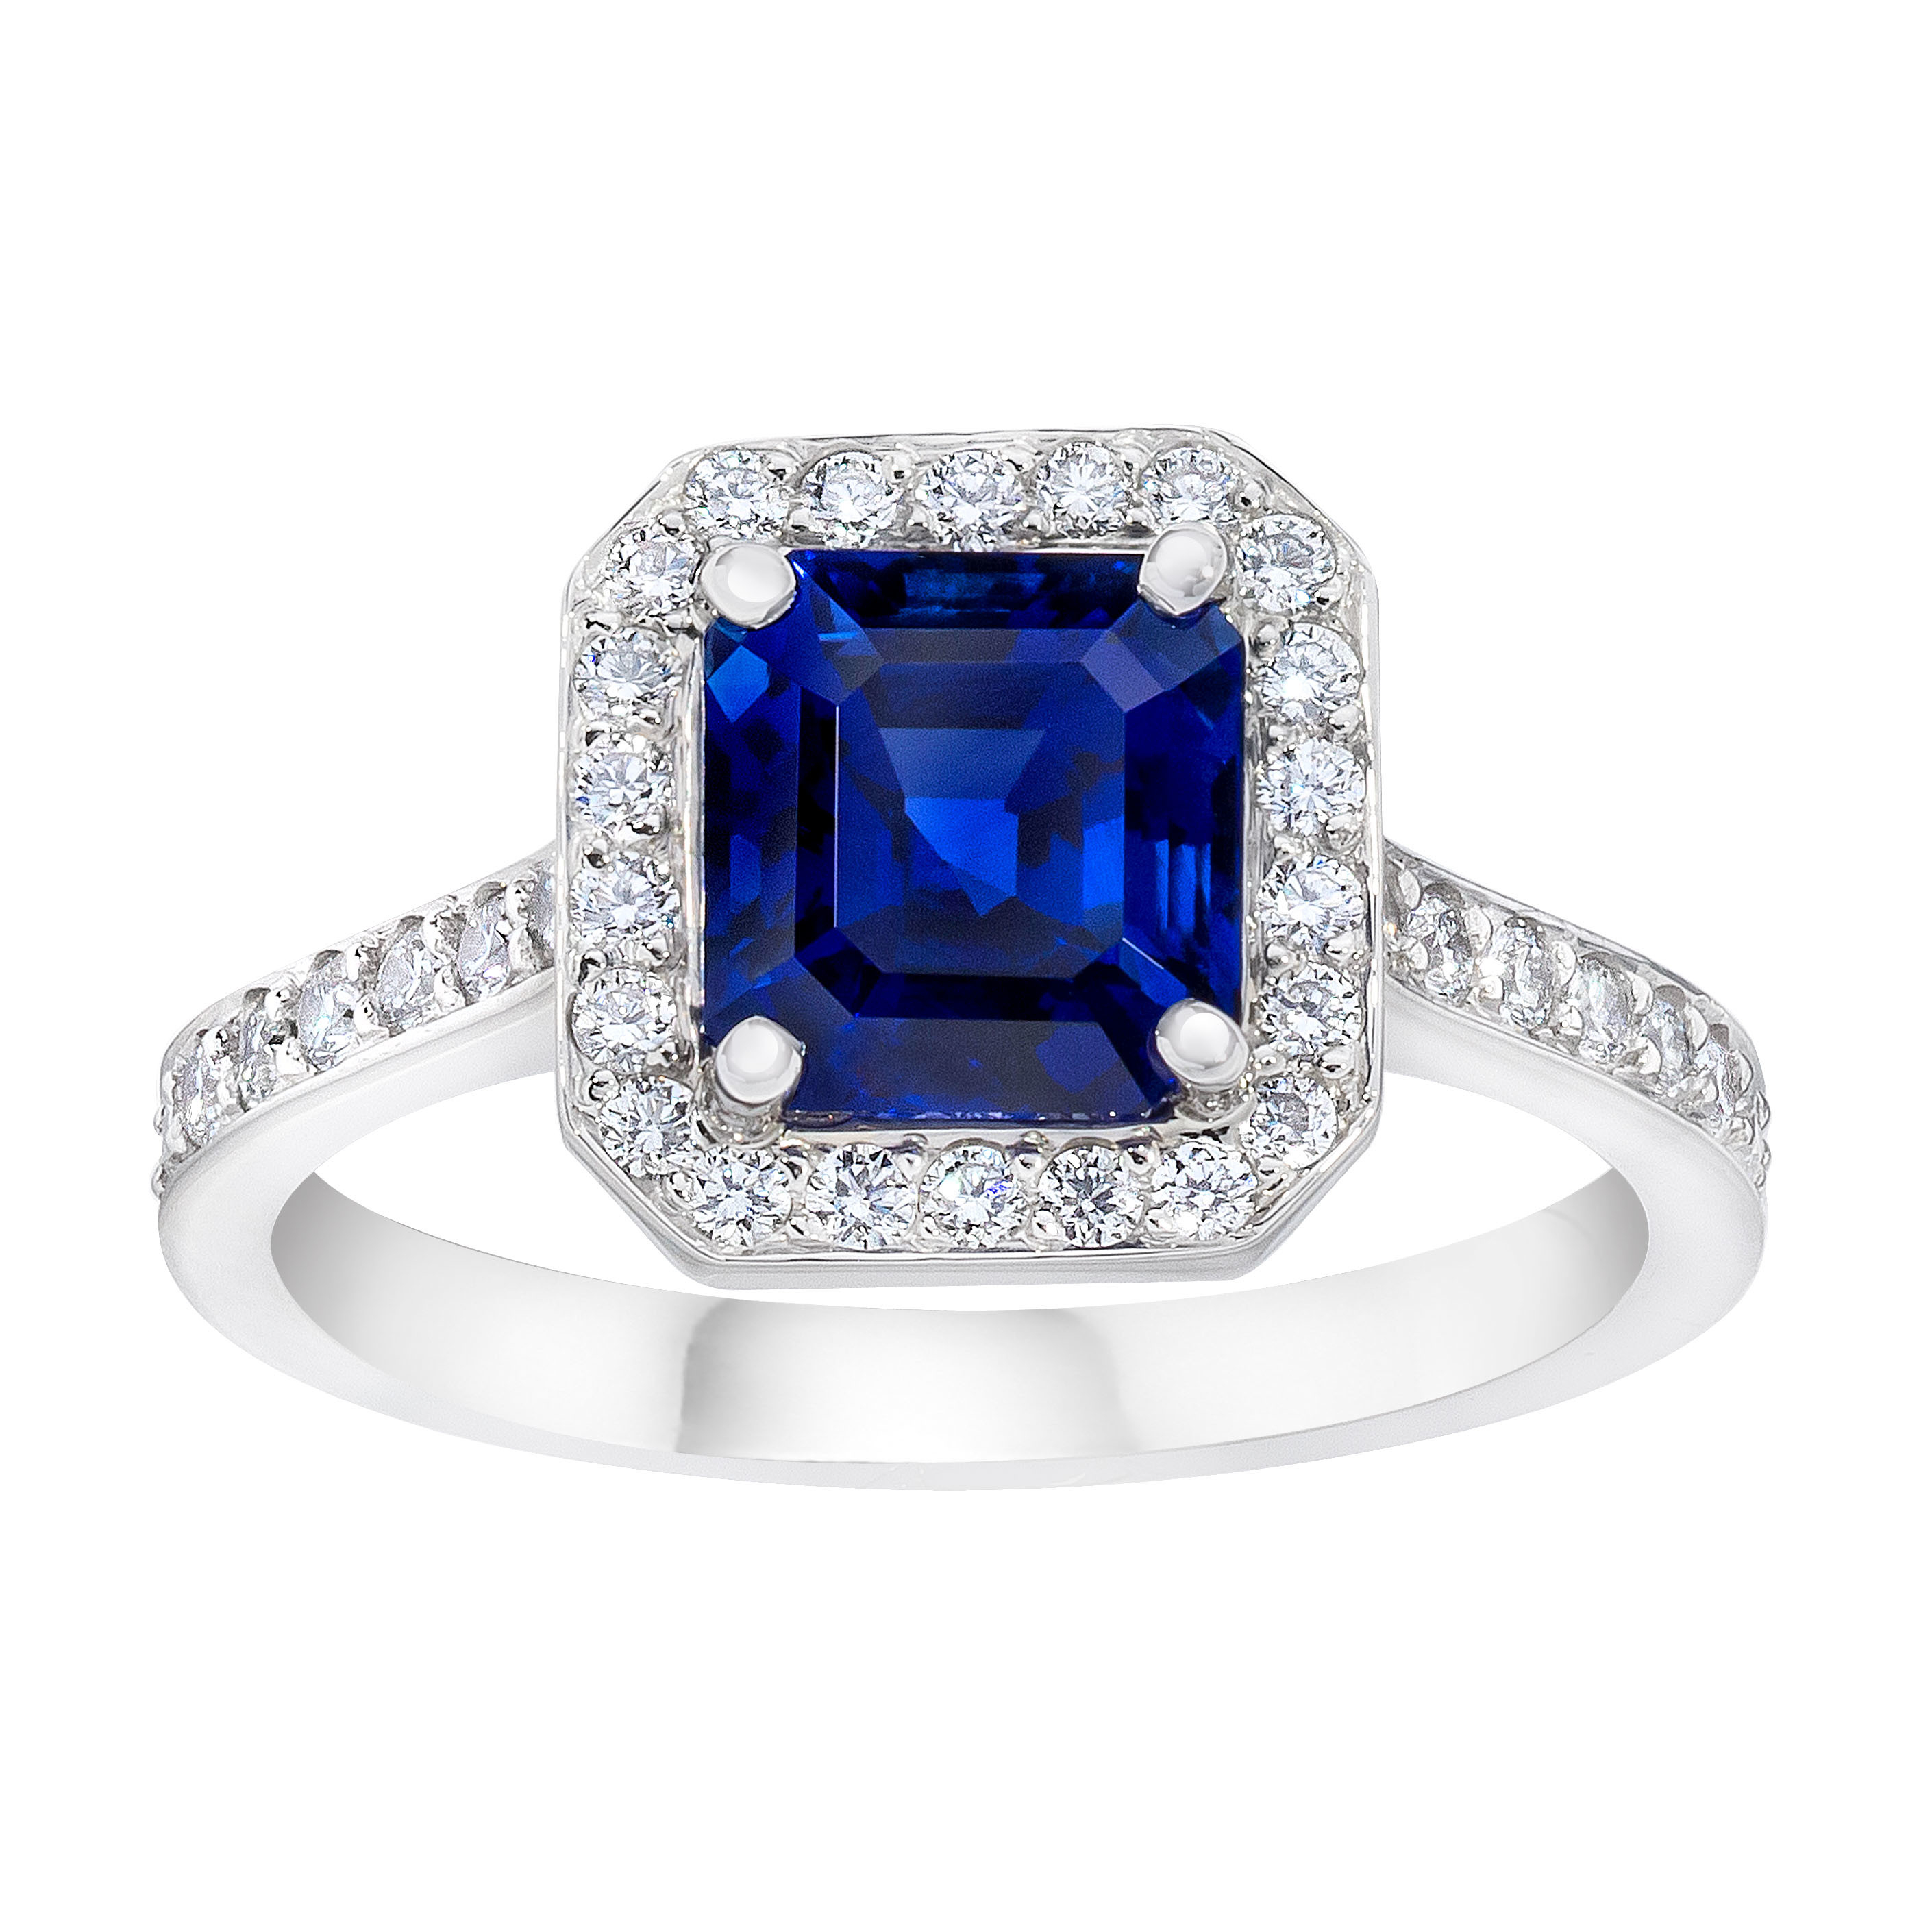 Sapphire Halo Ring – Rings – Fine Jewelry Pertaining To Best And Newest Sparkling Halo Rings (Gallery 19 of 25)